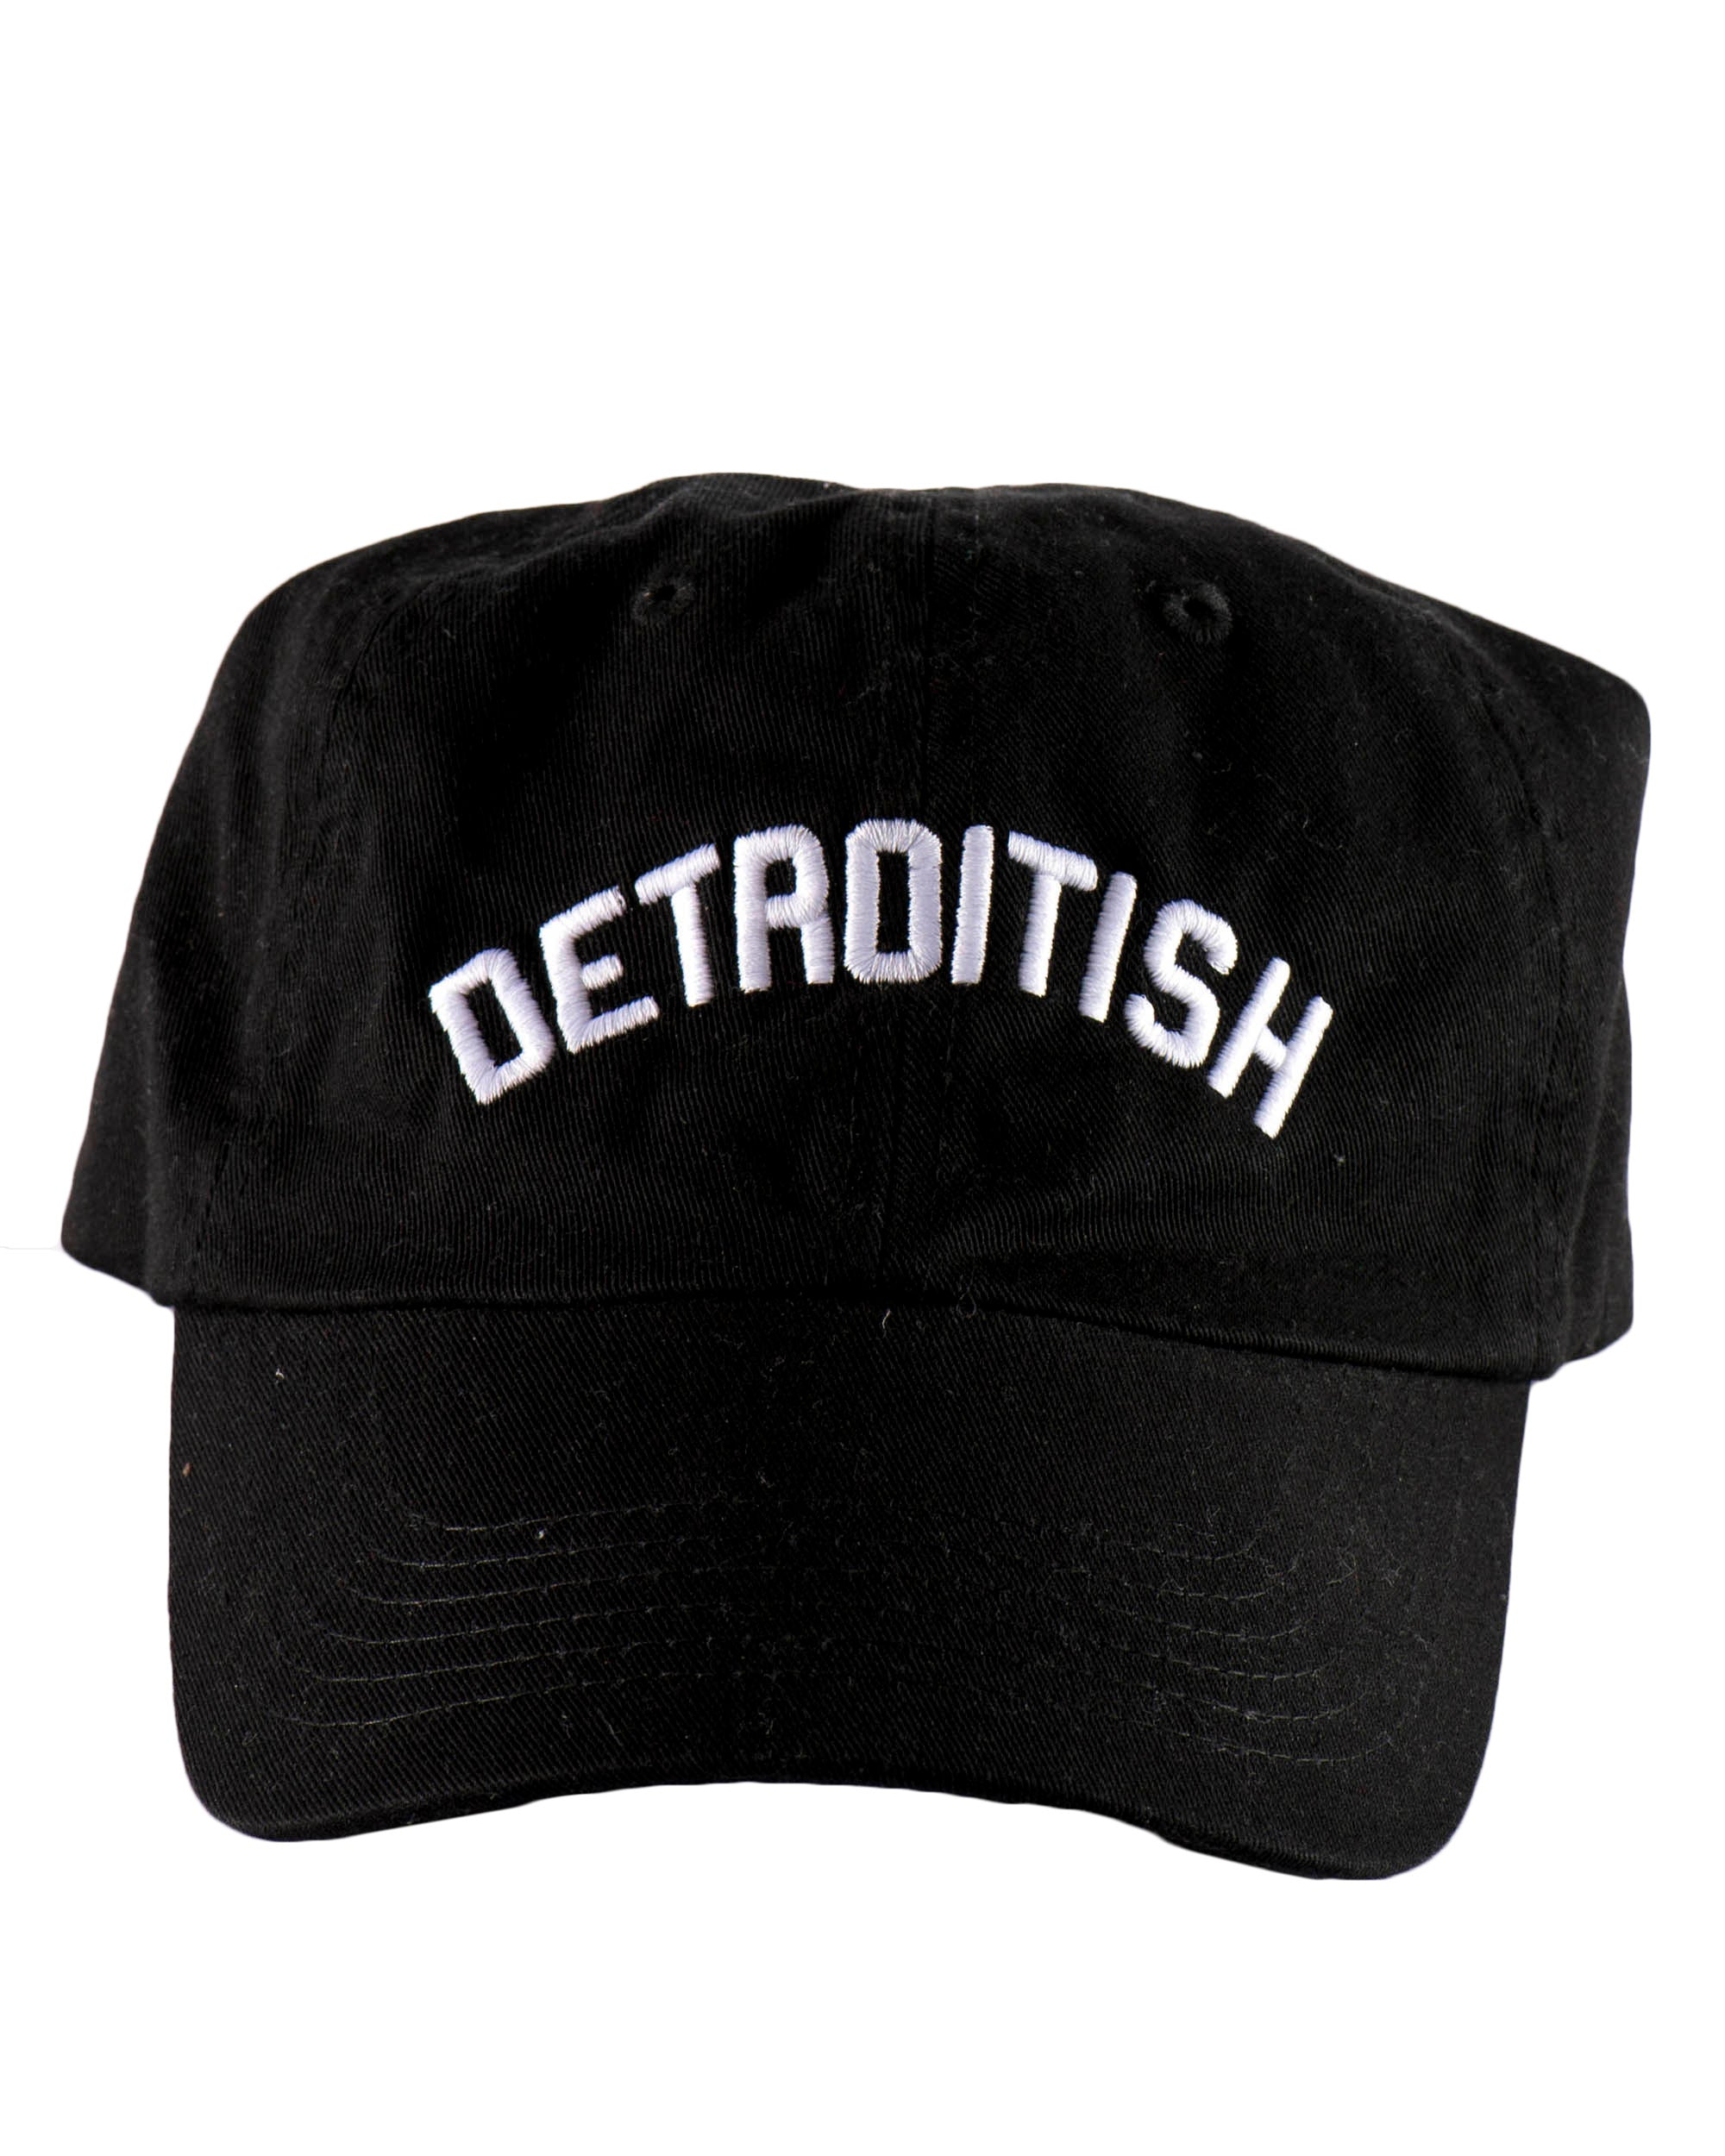 Detroitish Dad Cap - Black - The Great Lakes State